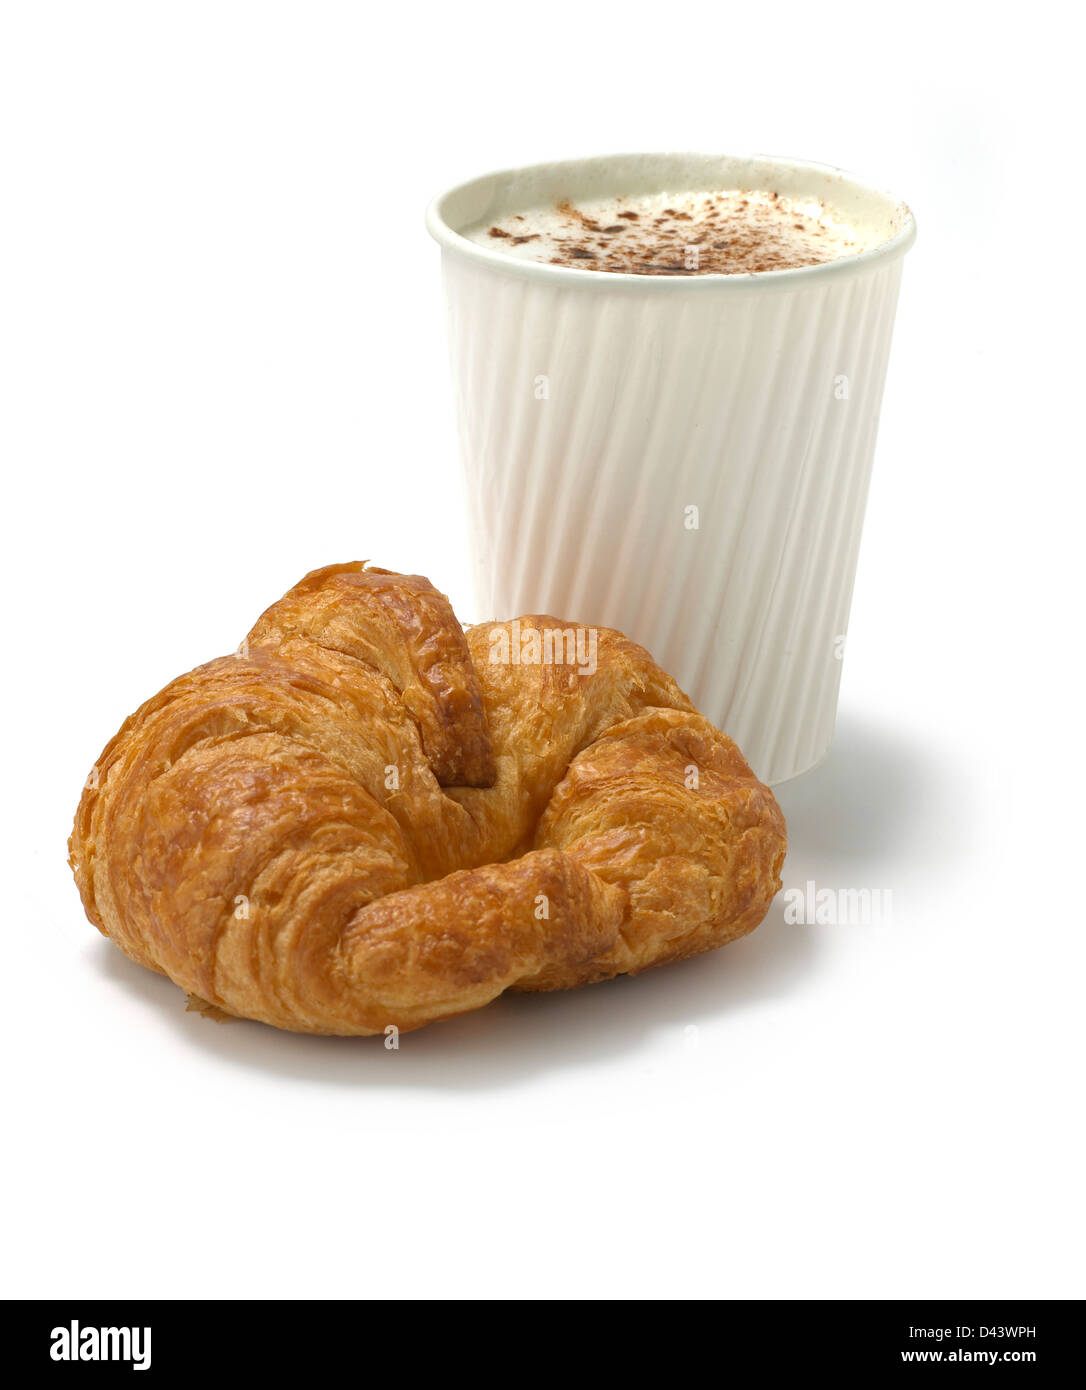 croissant mit kaffee im pappbecher wei en hintergrund ausschneiden stockfoto bild 54175817 alamy. Black Bedroom Furniture Sets. Home Design Ideas